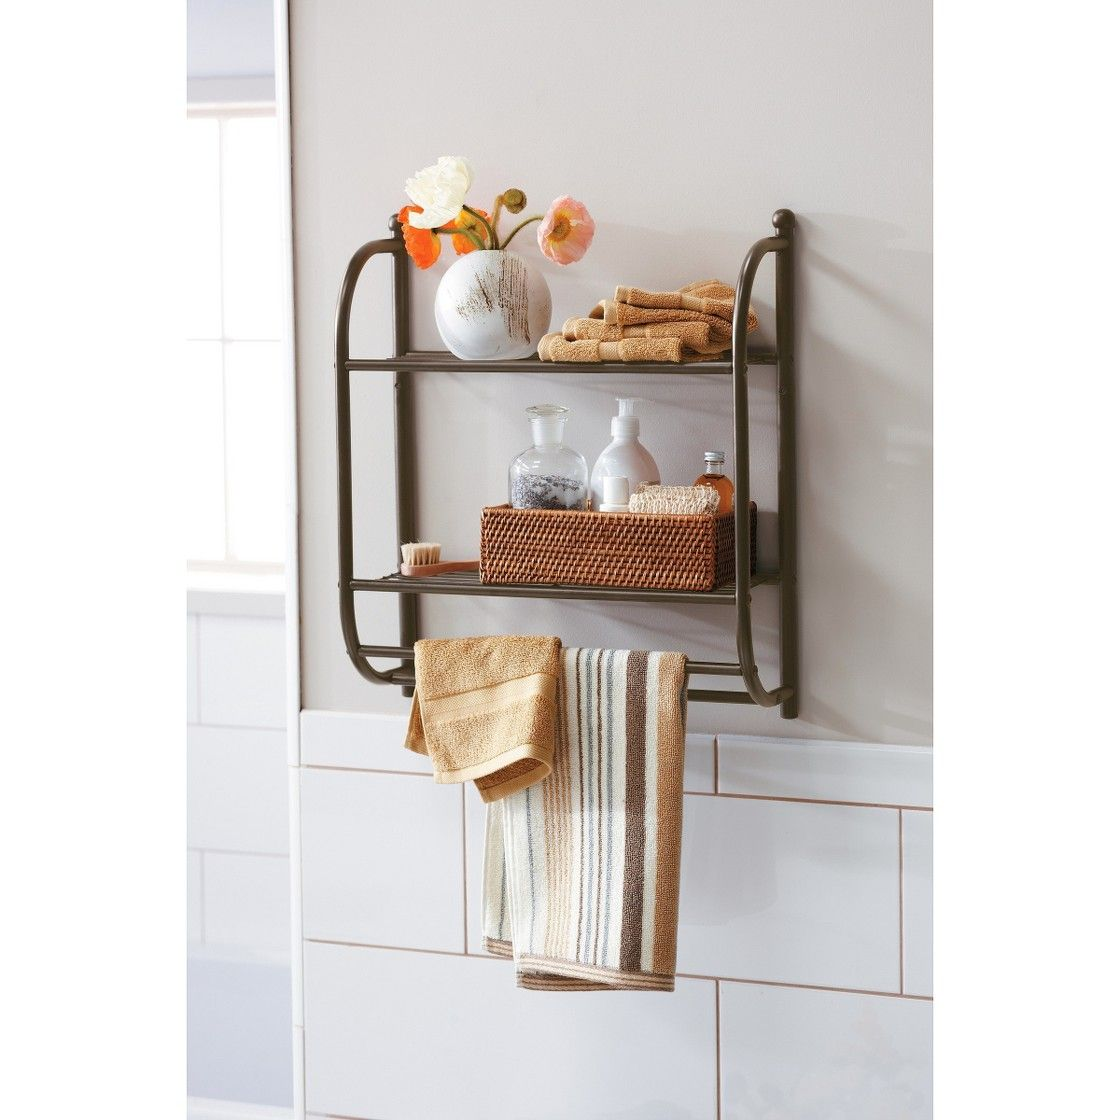 Target Home Oil Rubbed Wall Shelf - Bronze   Home things ...